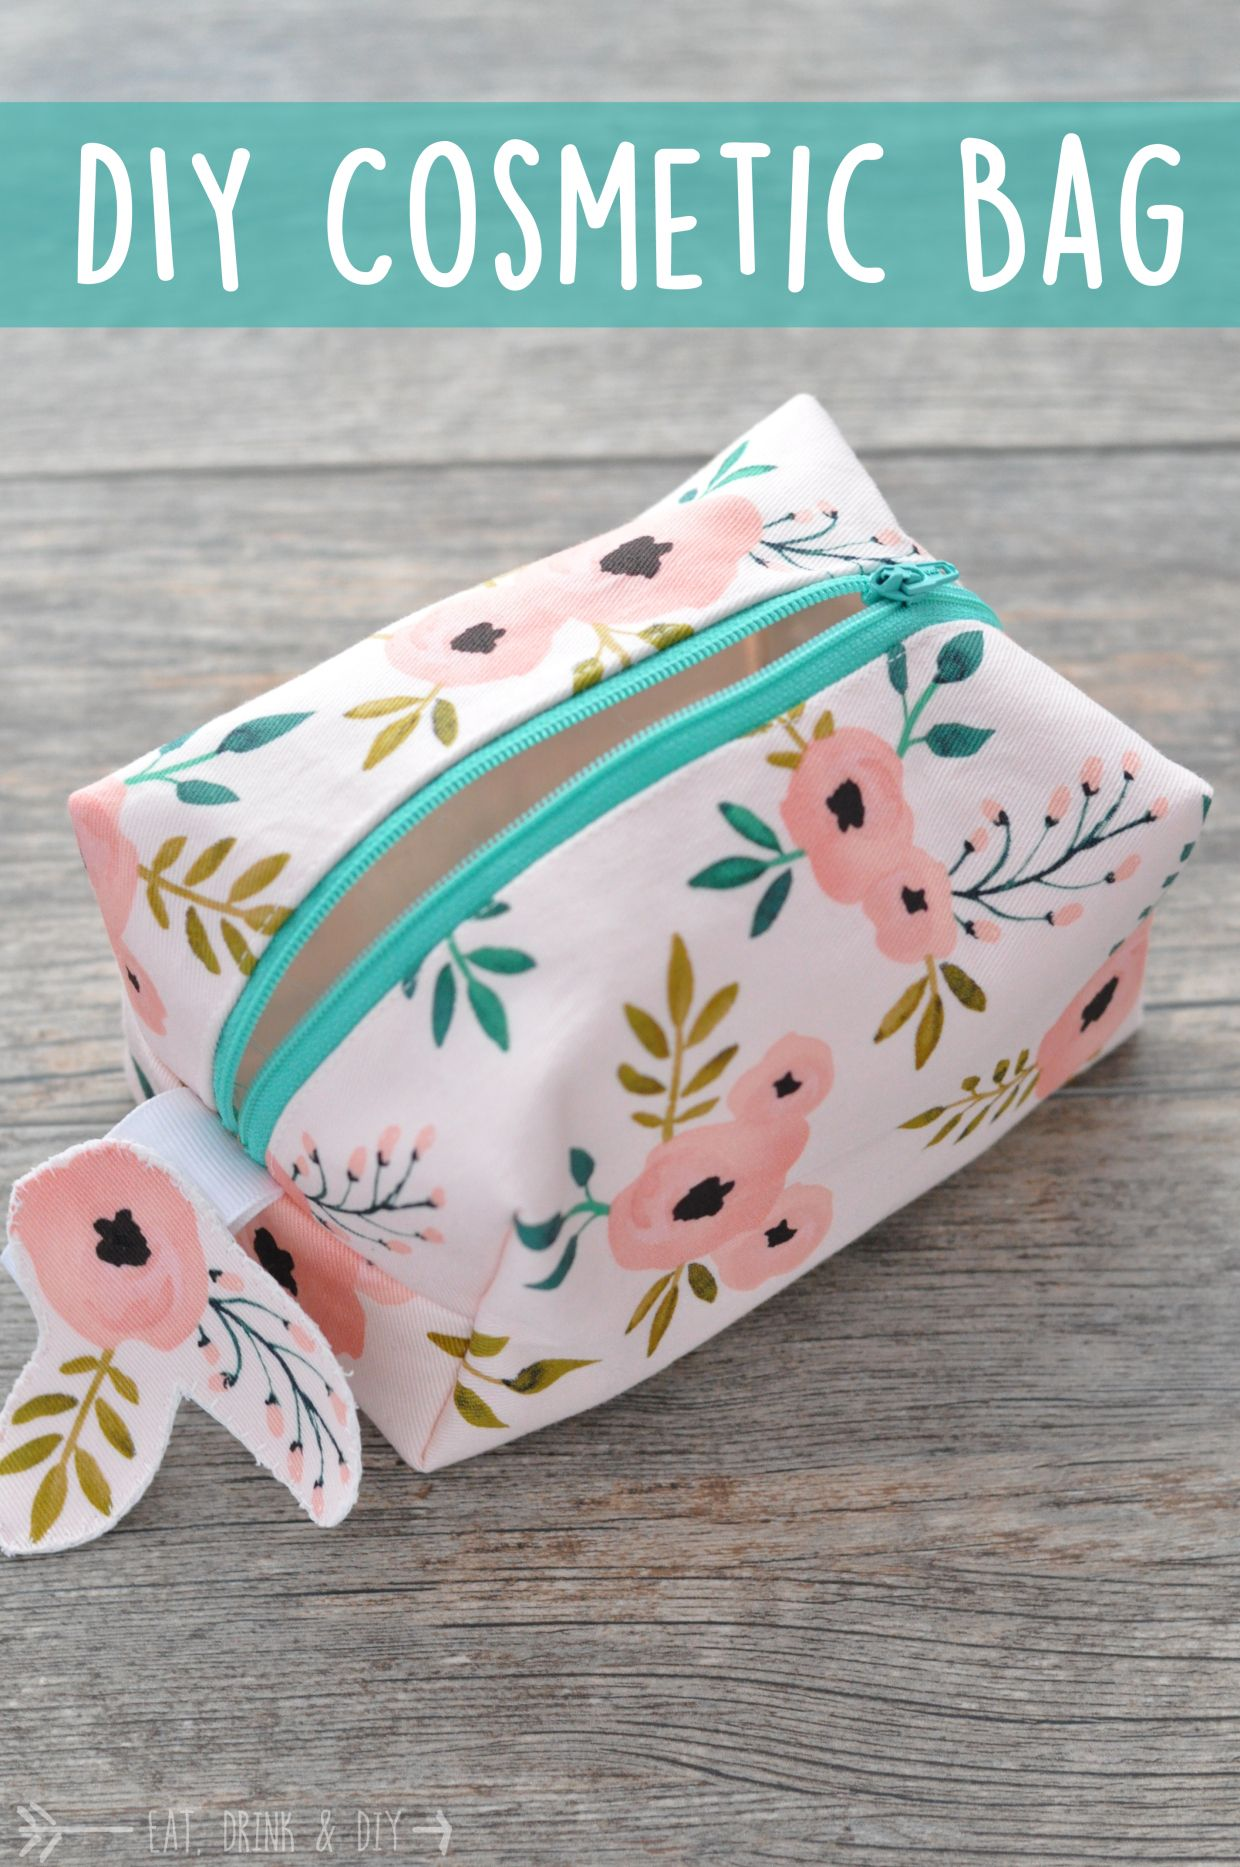 Diy Cosmetic Bag Eat Drink